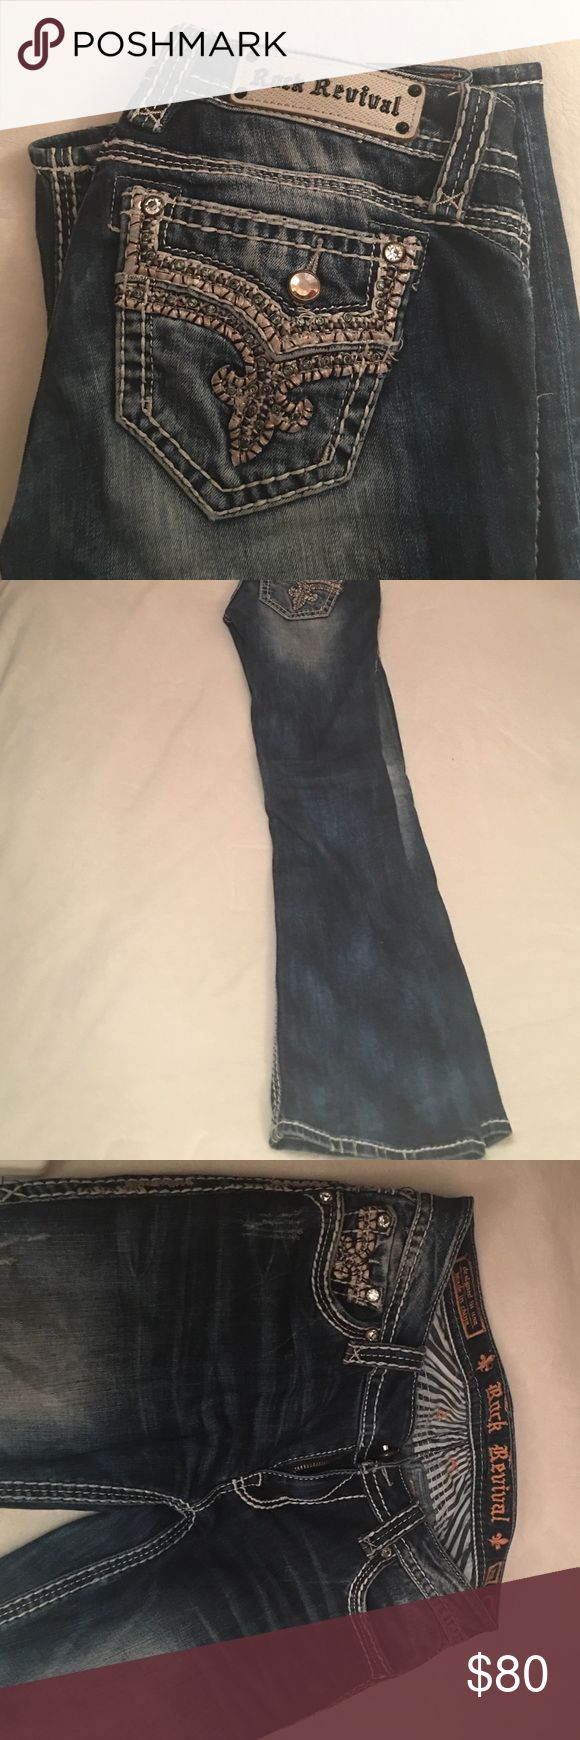 Rock Revival Jeans Rock revival boot cut jeans... barely worn. Size 28 regular. Great condition! Rock Revival Jeans Boot Cut